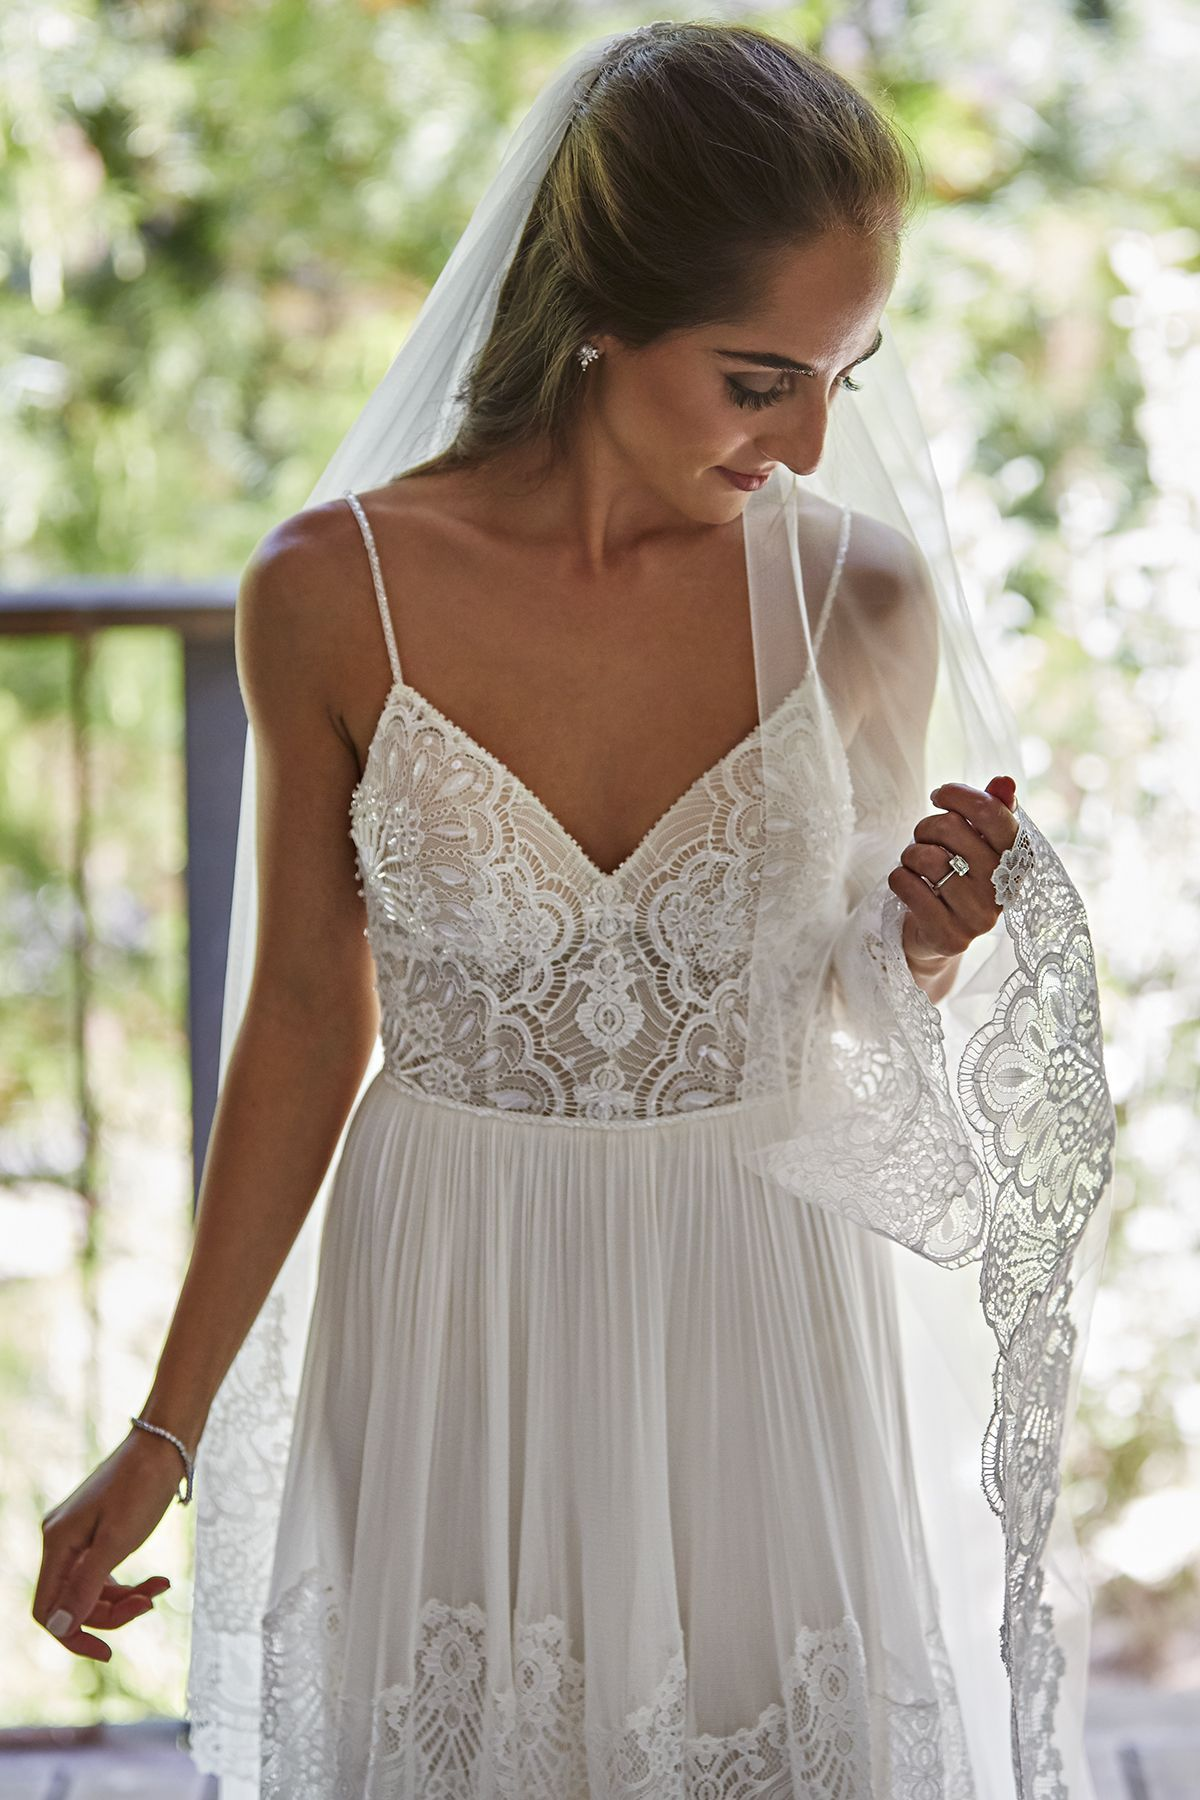 Lilian by flora bridal i romantic wedding dress i boho wedding